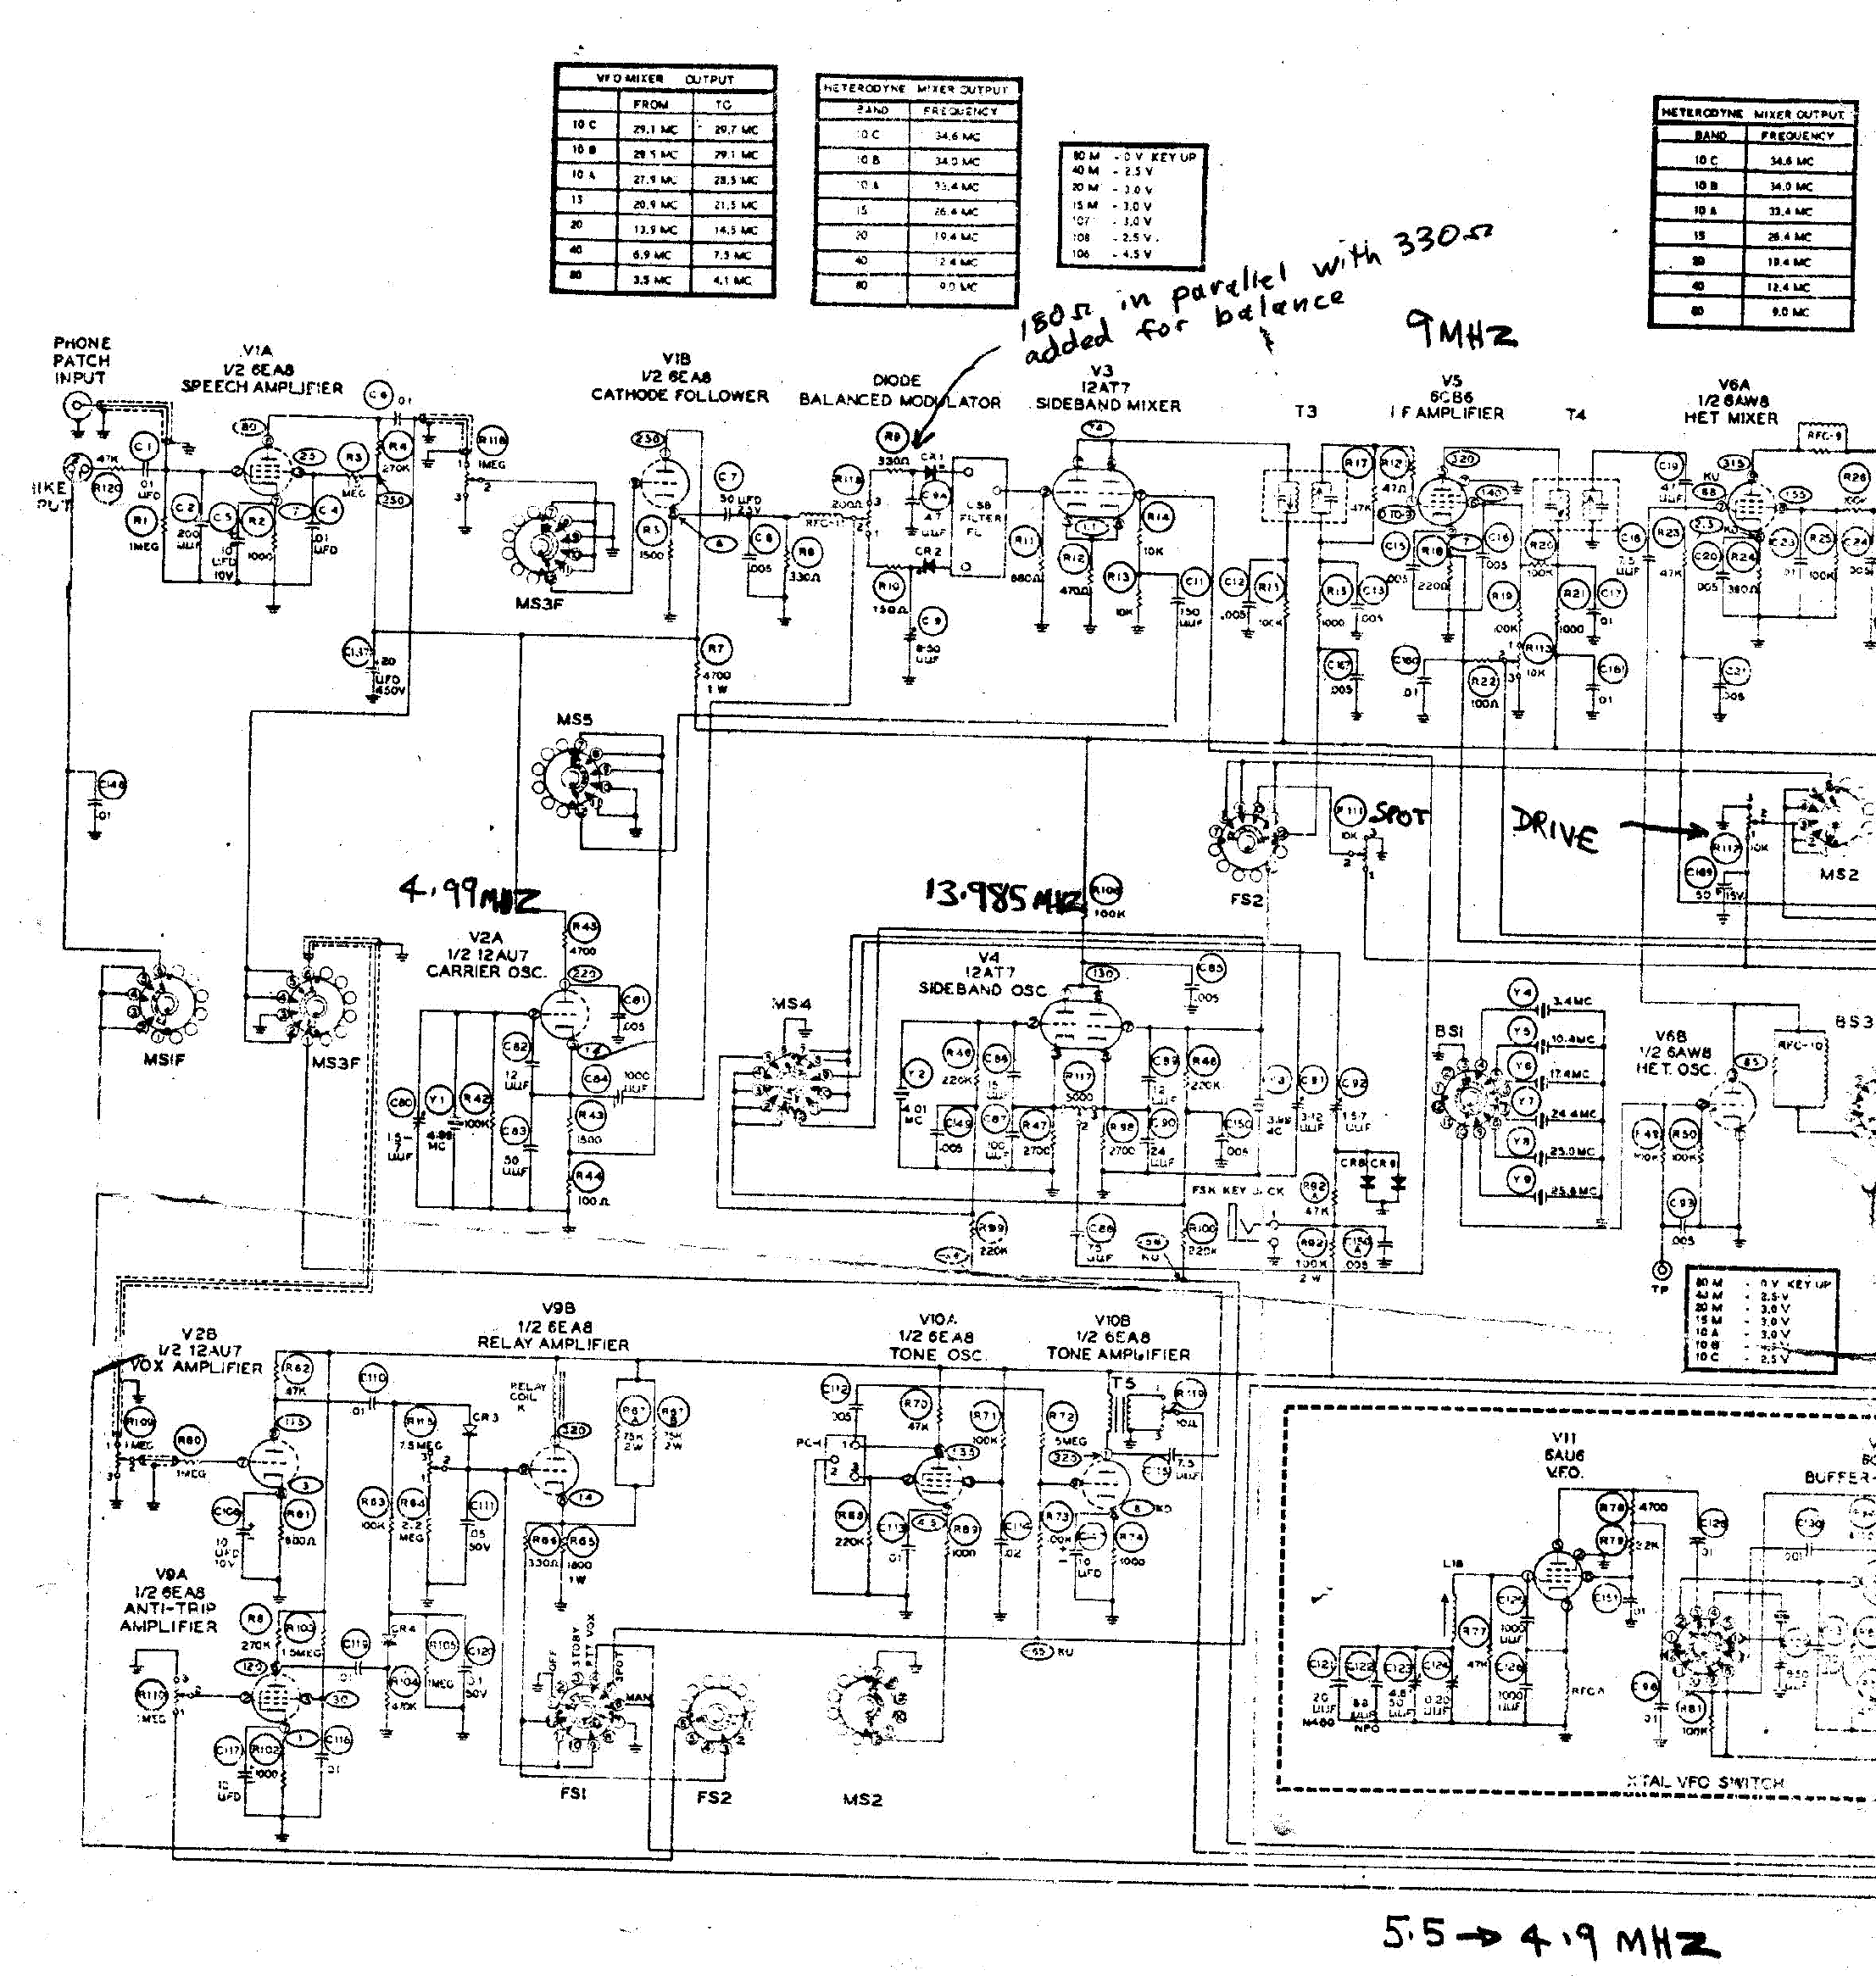 HEATHKIT SB-10 SSB ADAPTER SCH Service Manual download